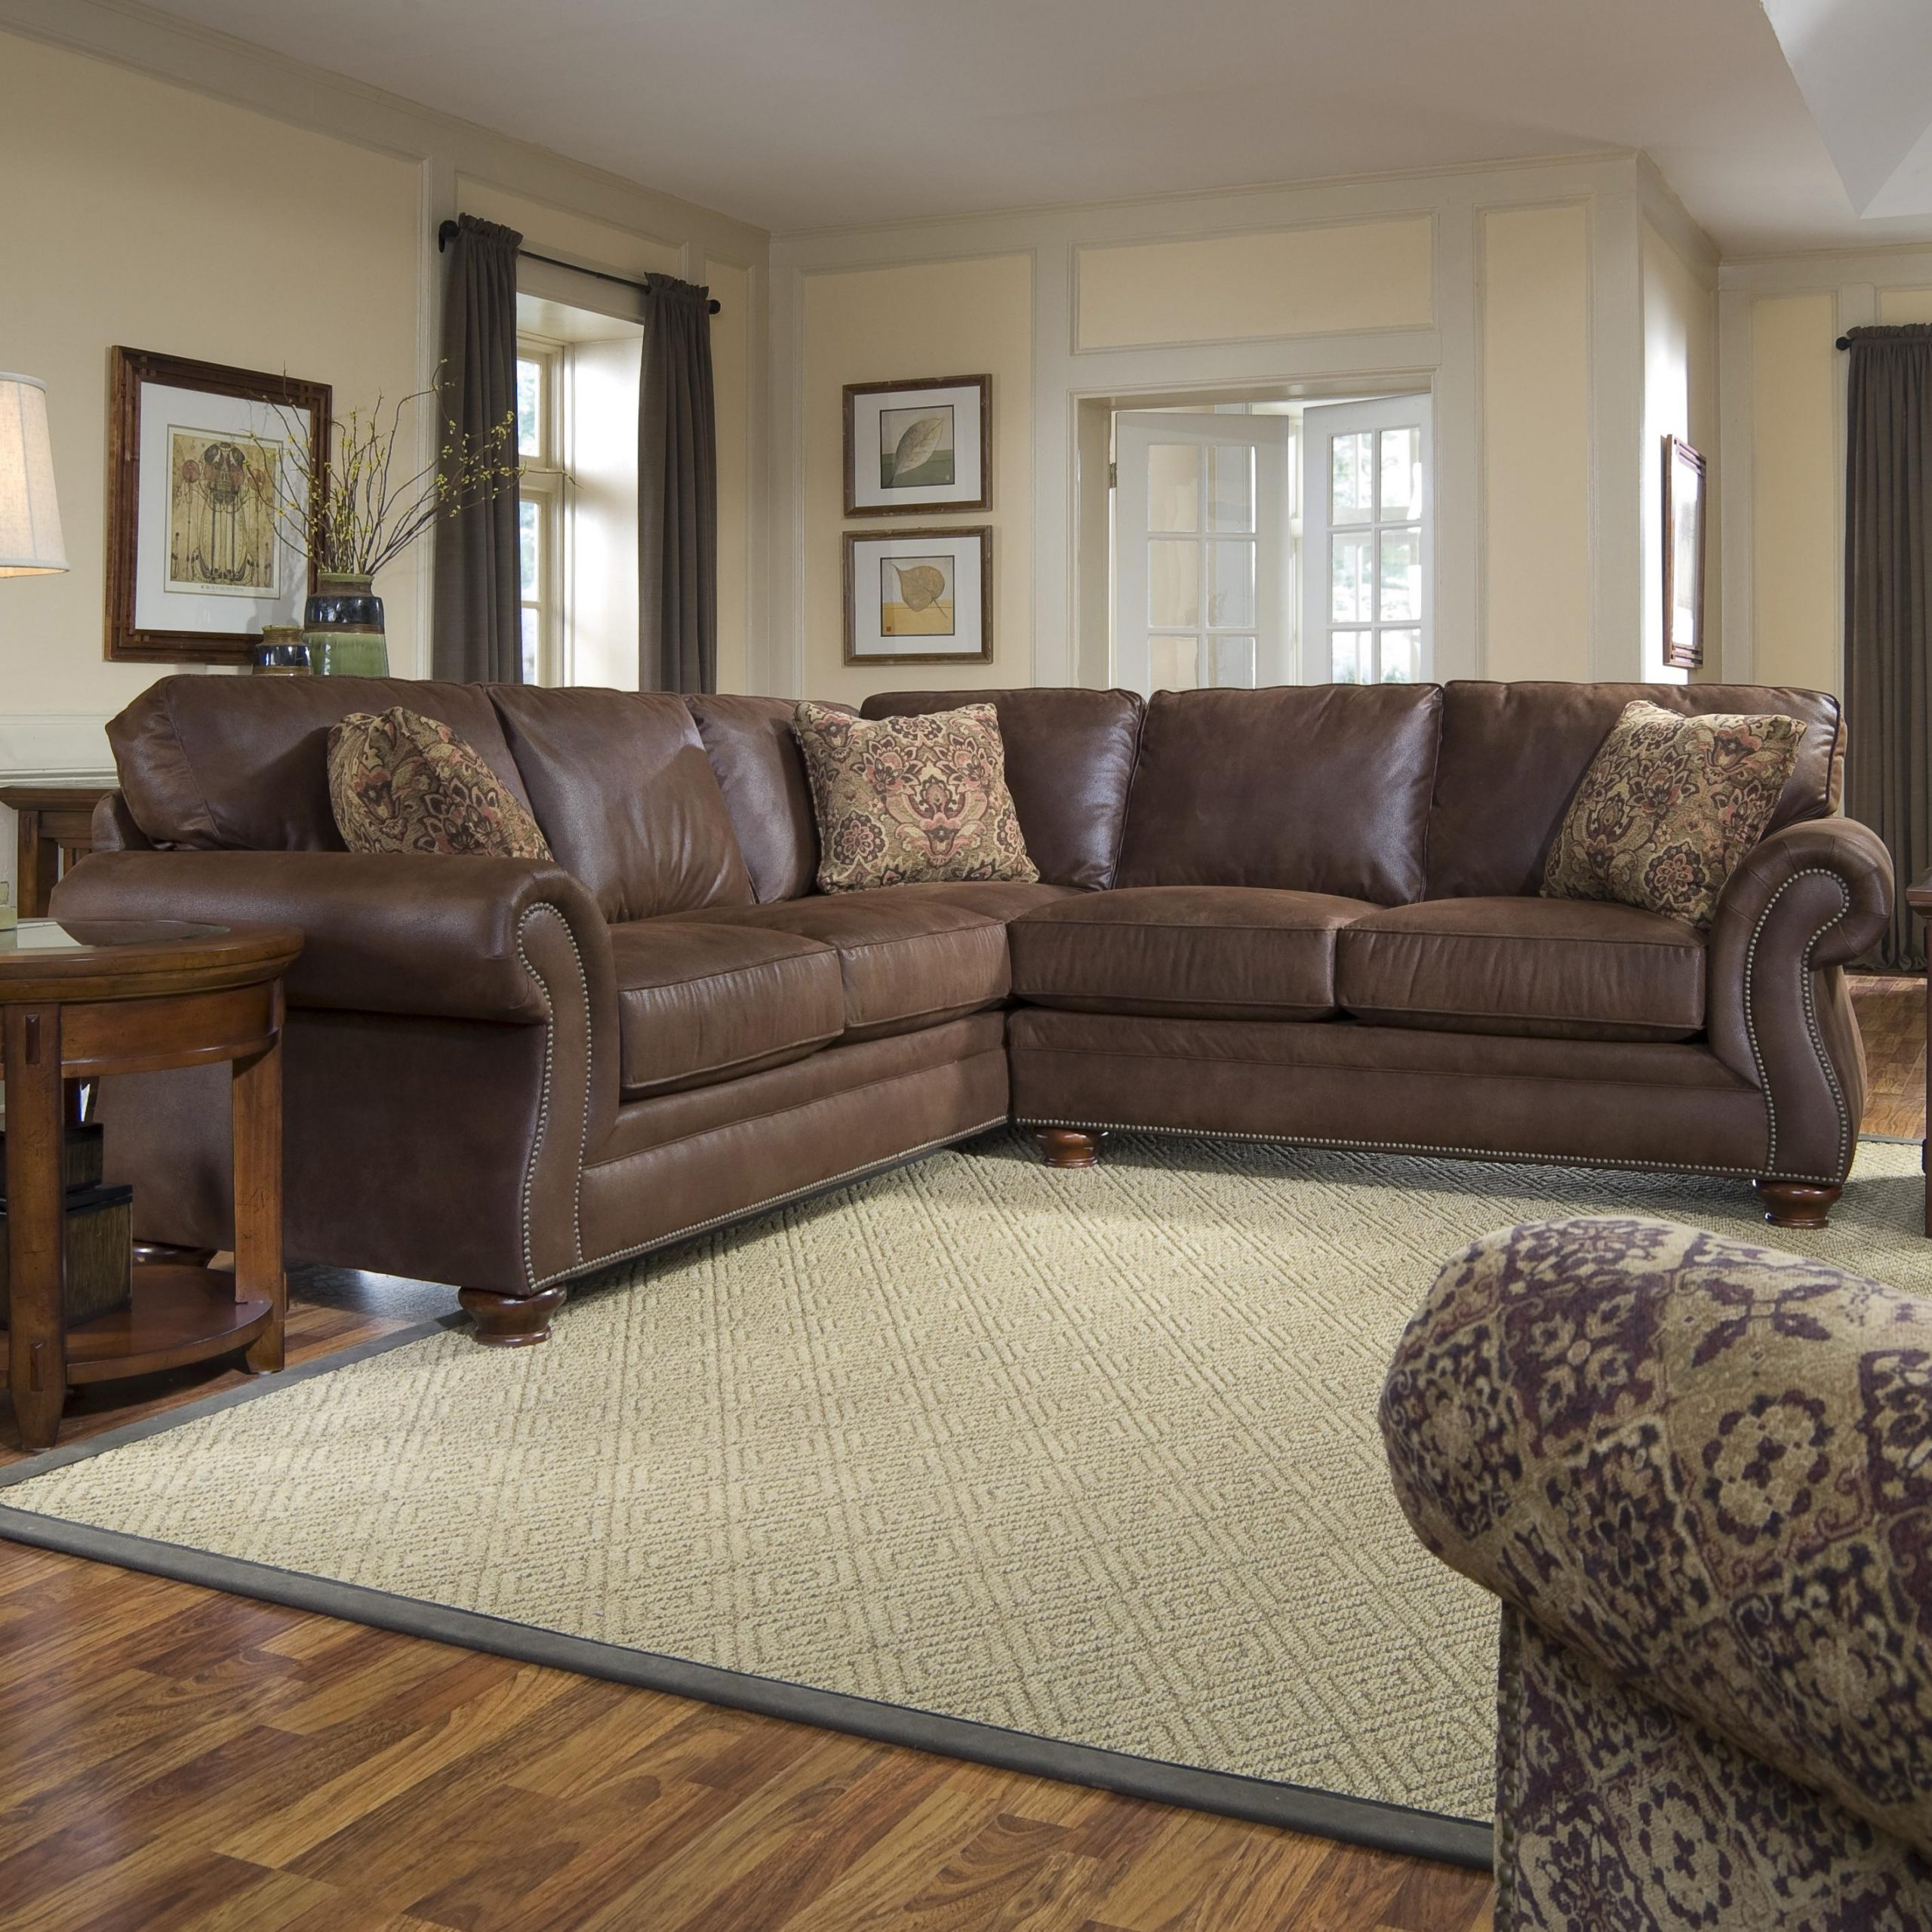 Broyhill Laramie Sofa Laramie Brown Ottoman Gallery Intended For Broyhill Sectional Sofas (Photo 1 of 15)